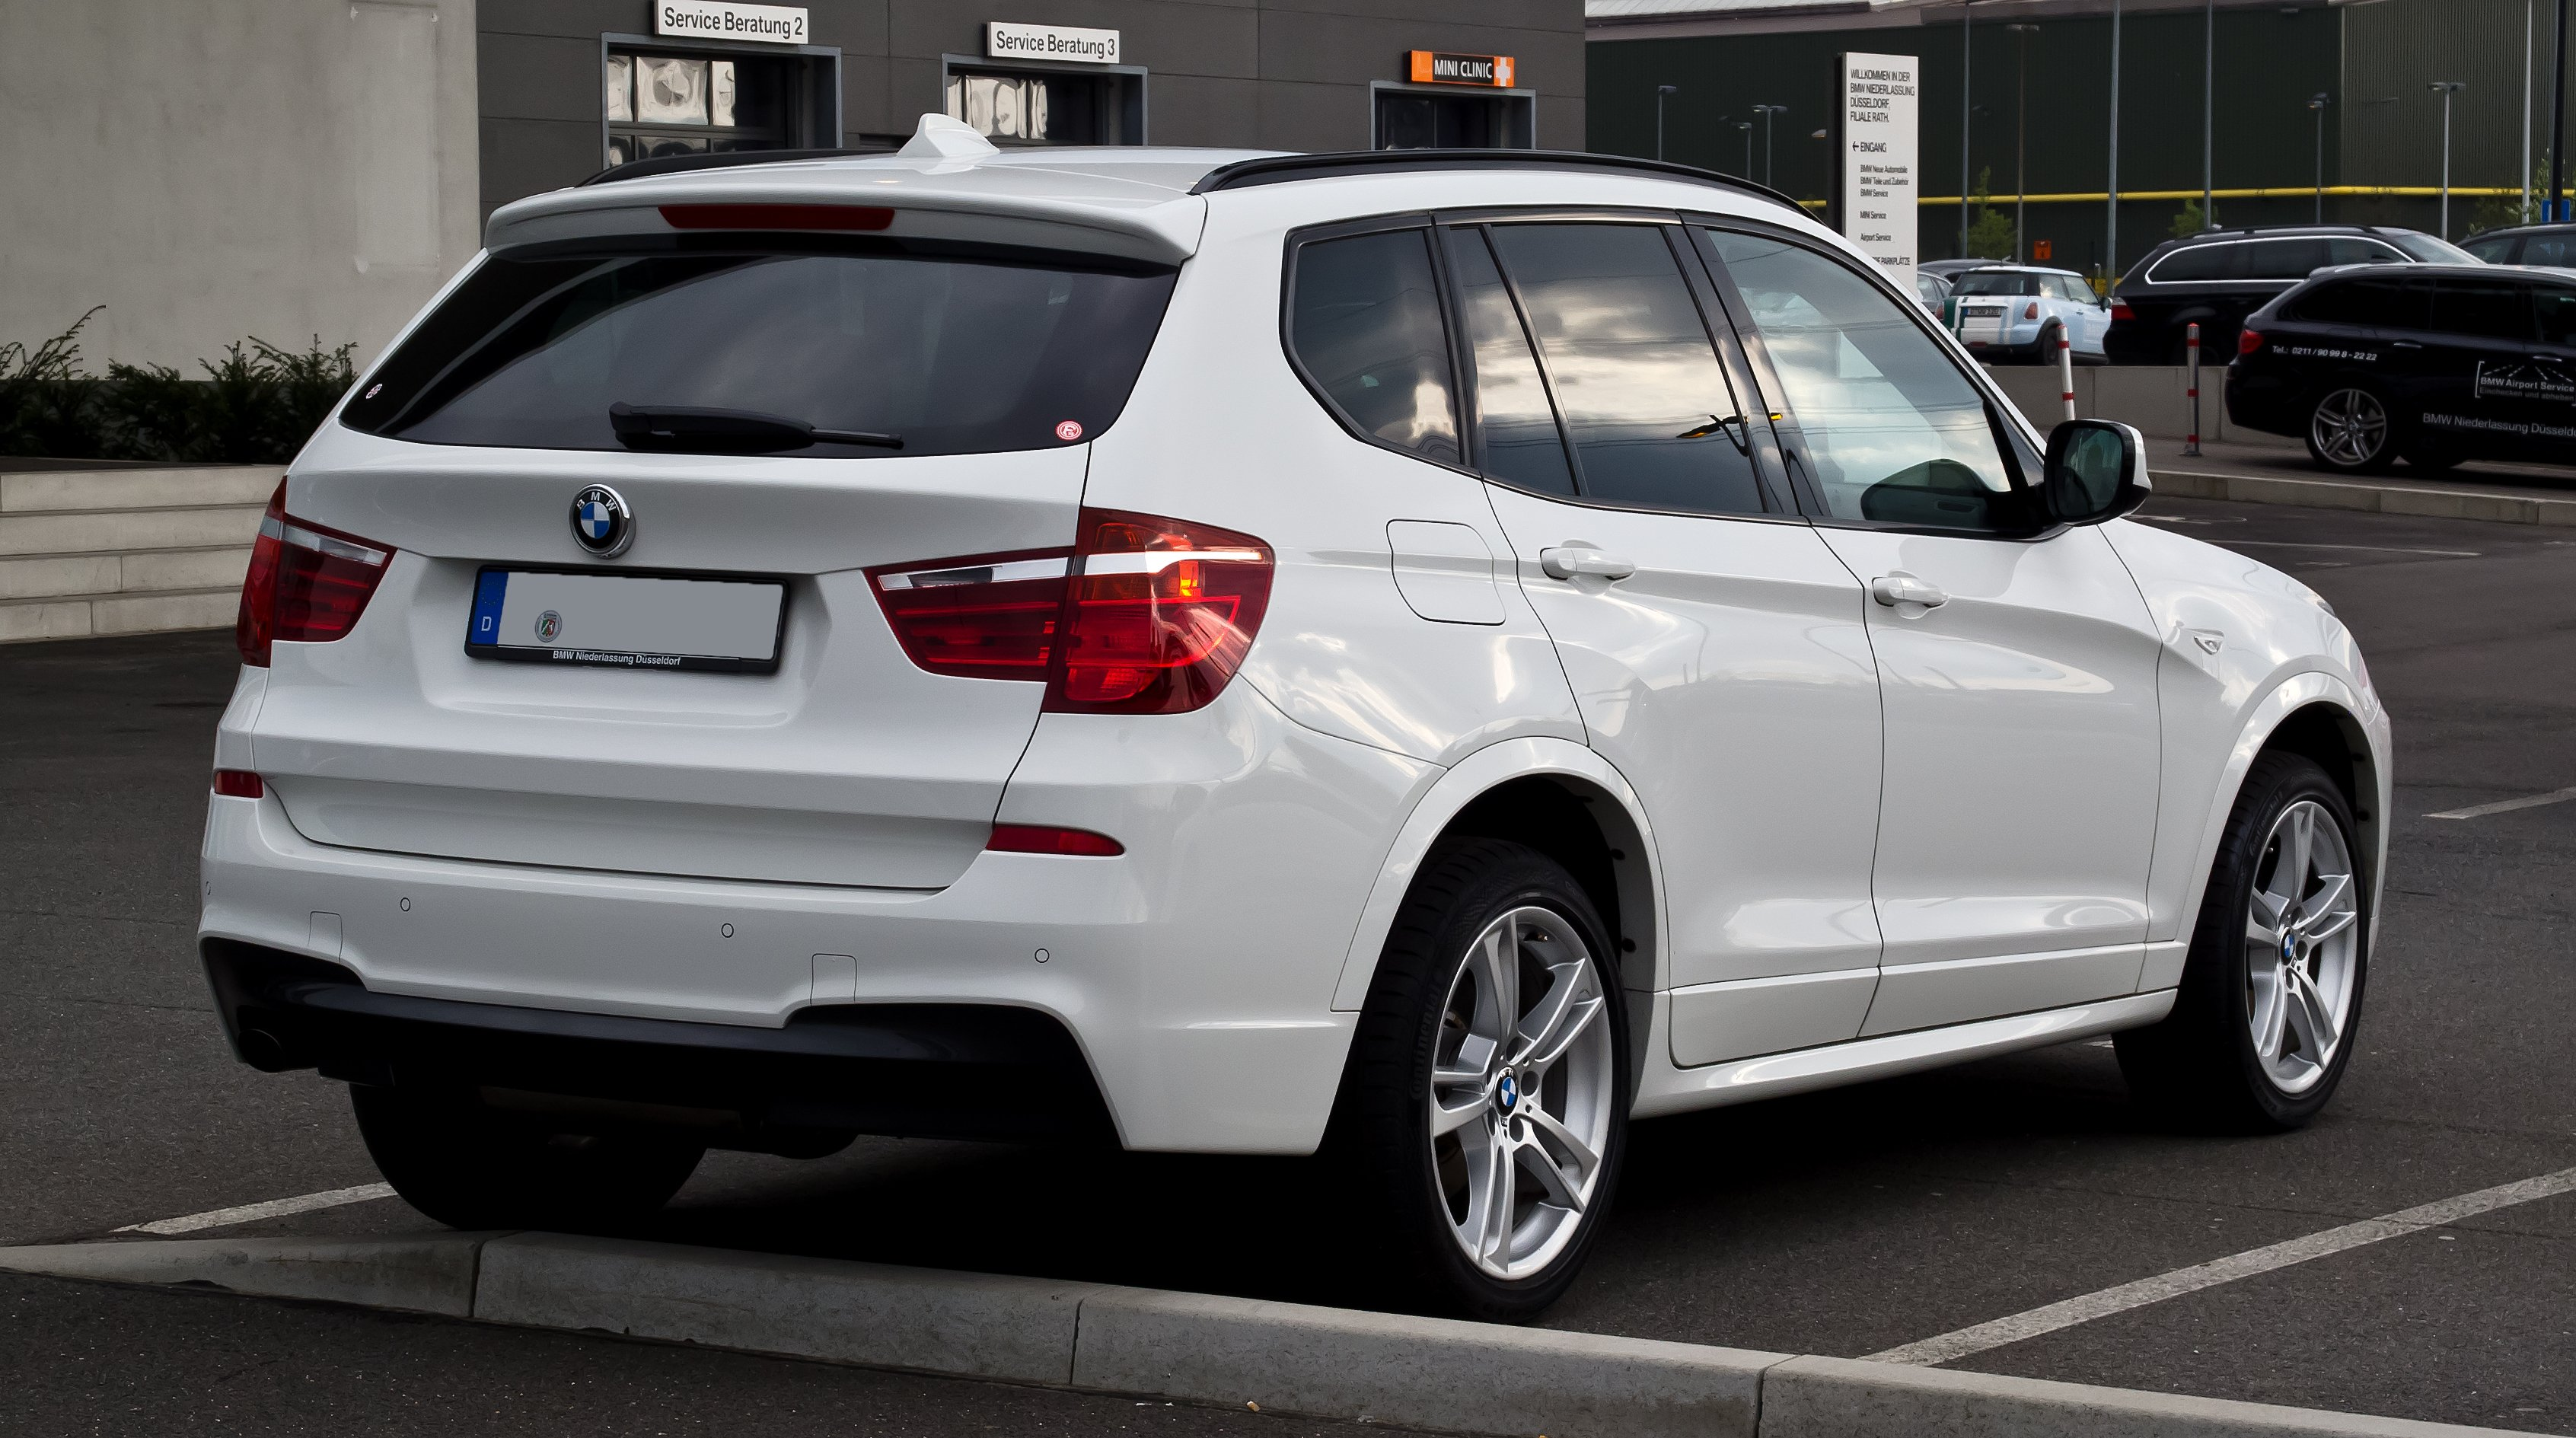 Pictures of bmw x3 #11